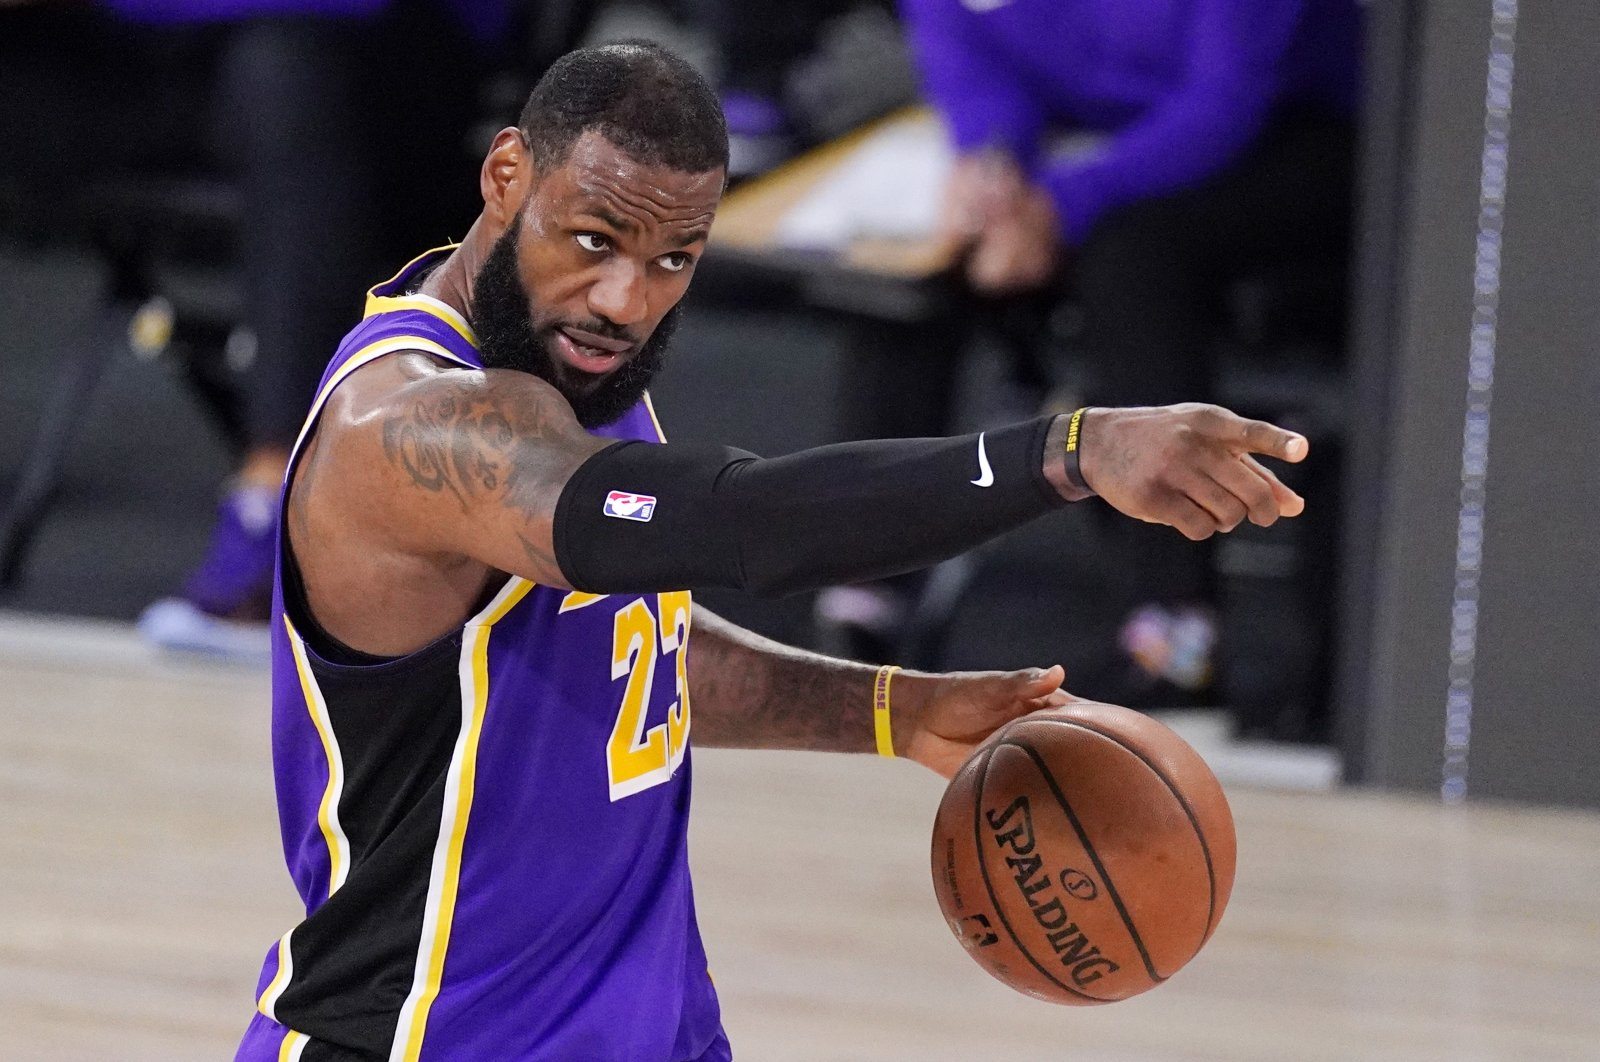 Los Angeles Lakers' LeBron James sets up a play during an NBA conference final playoff game against the Denver Nuggets, in Lake Buena Vista, Florida, U.S., Sept. 26, 2020. (AP Photo)